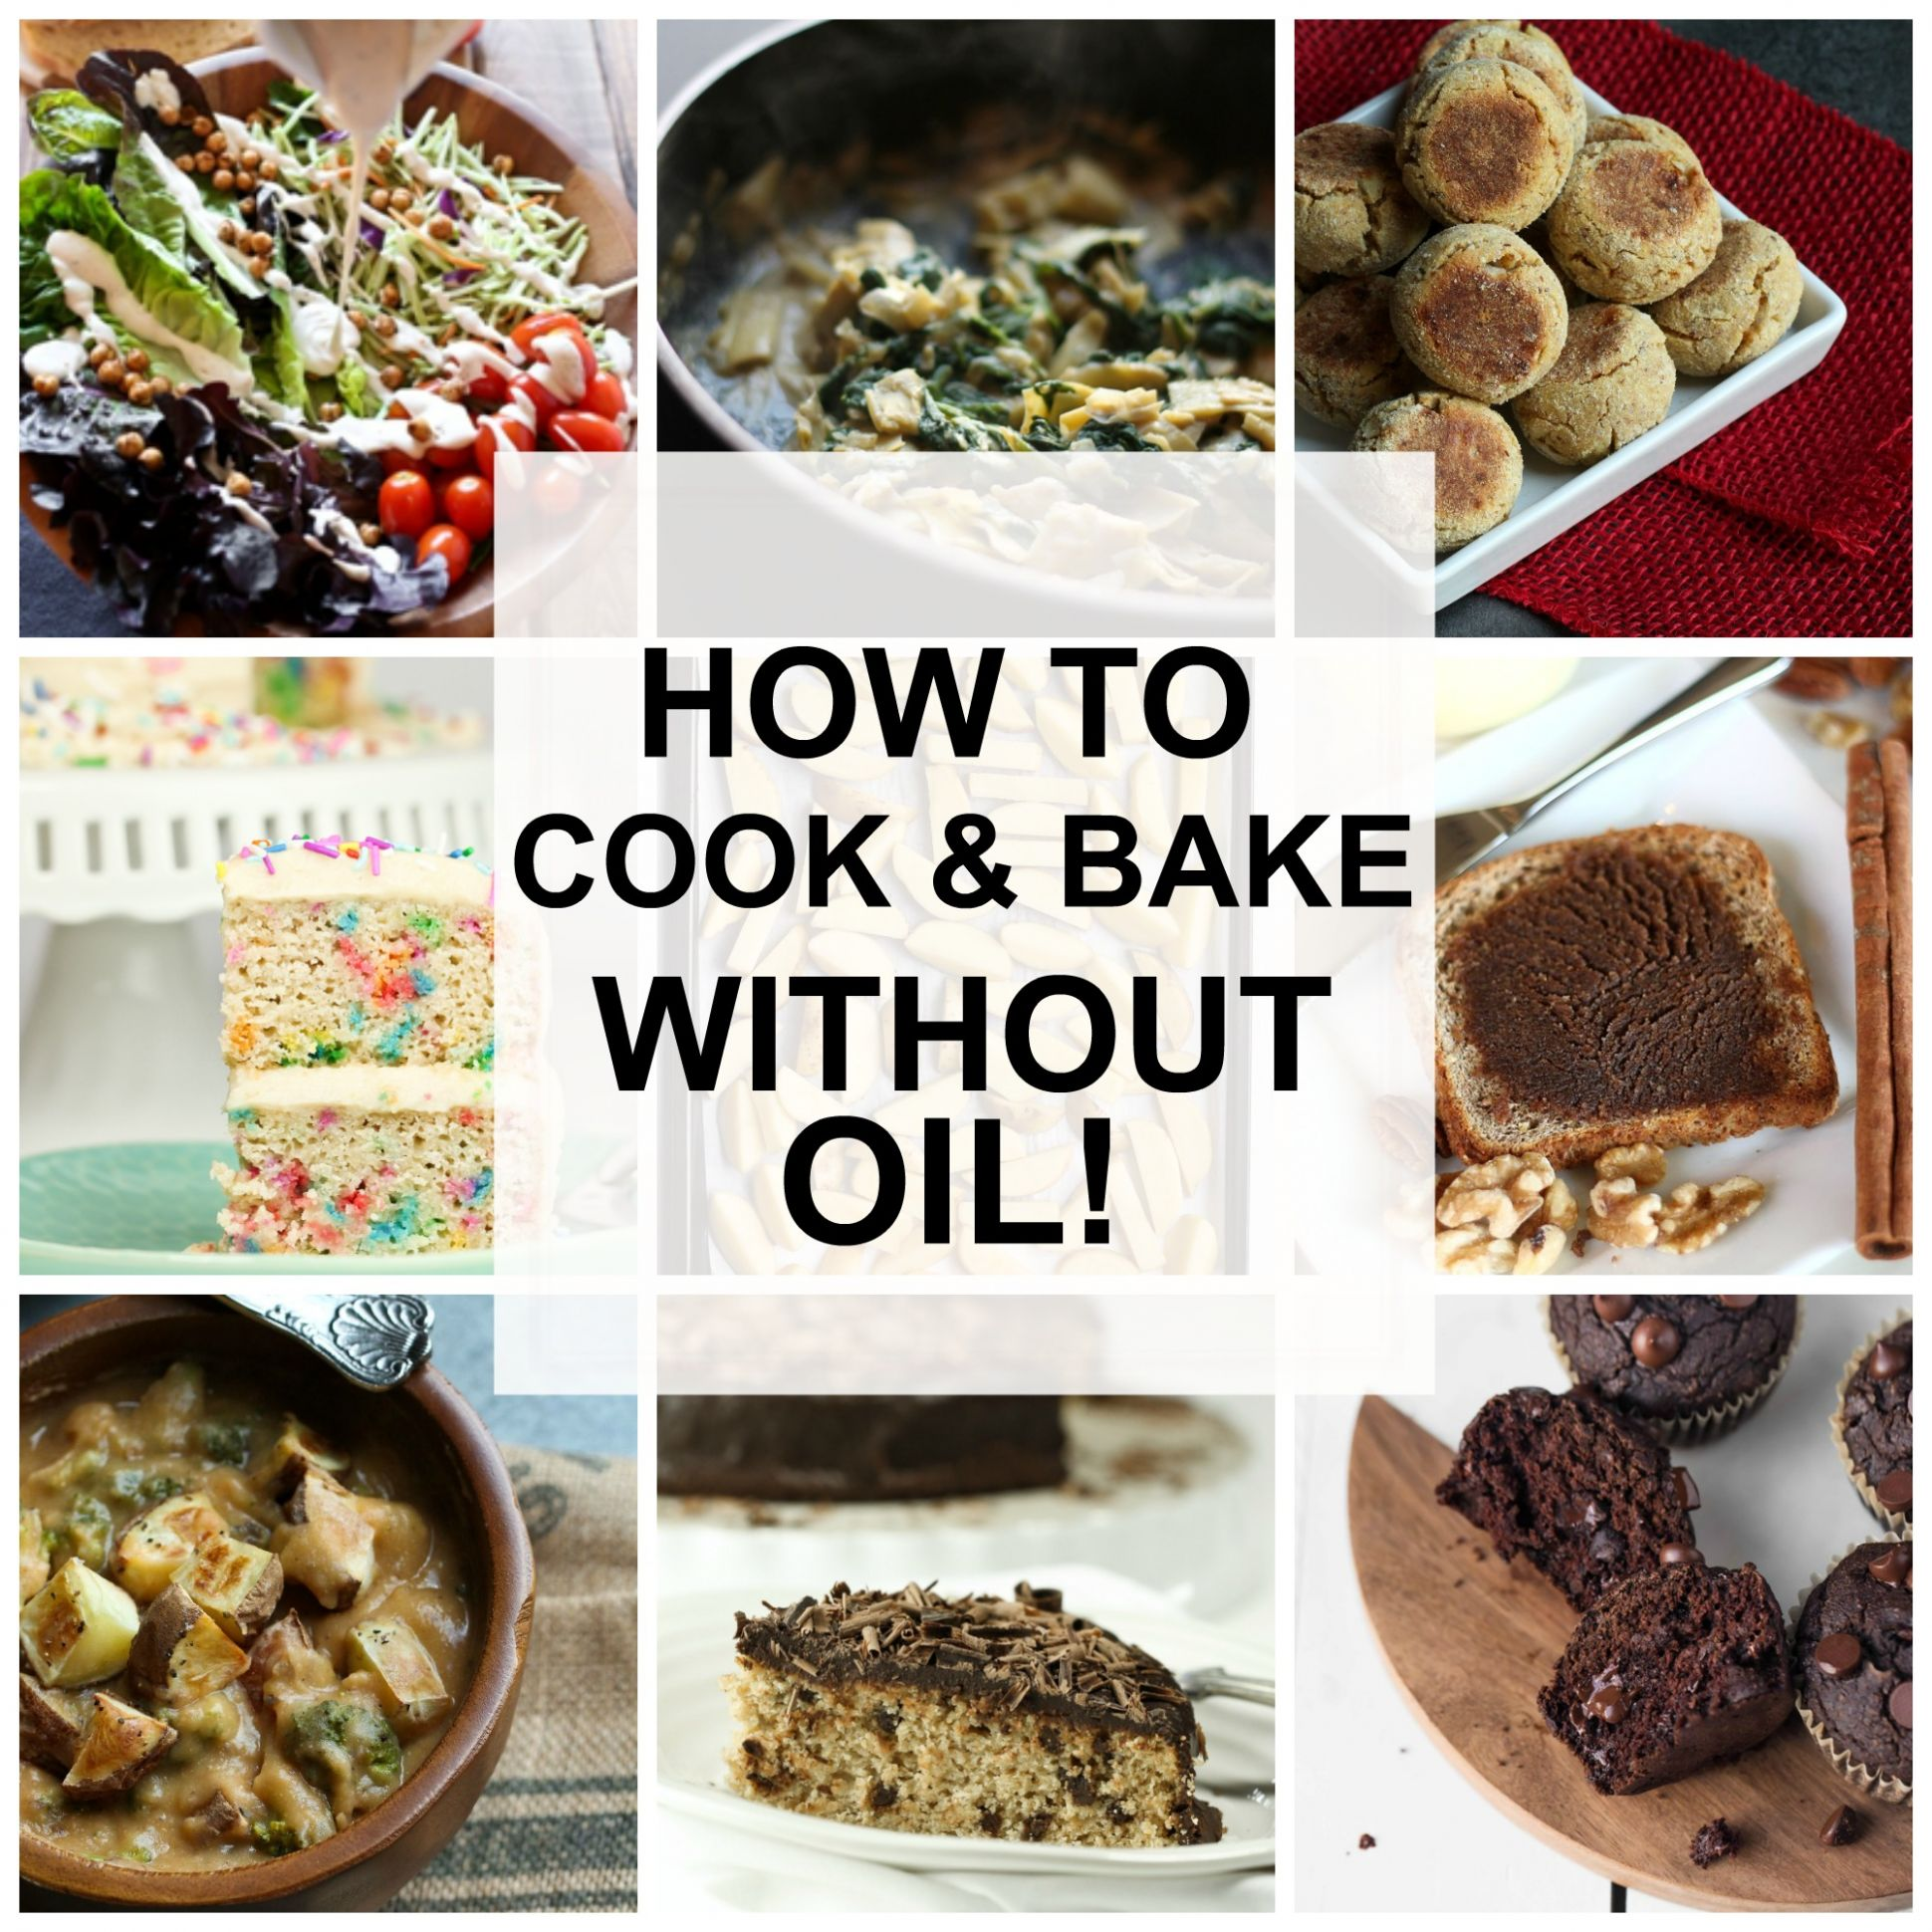 How to Cook and Bake Without Oil - The Vegan 12 - Vegetable Recipes Without Oil